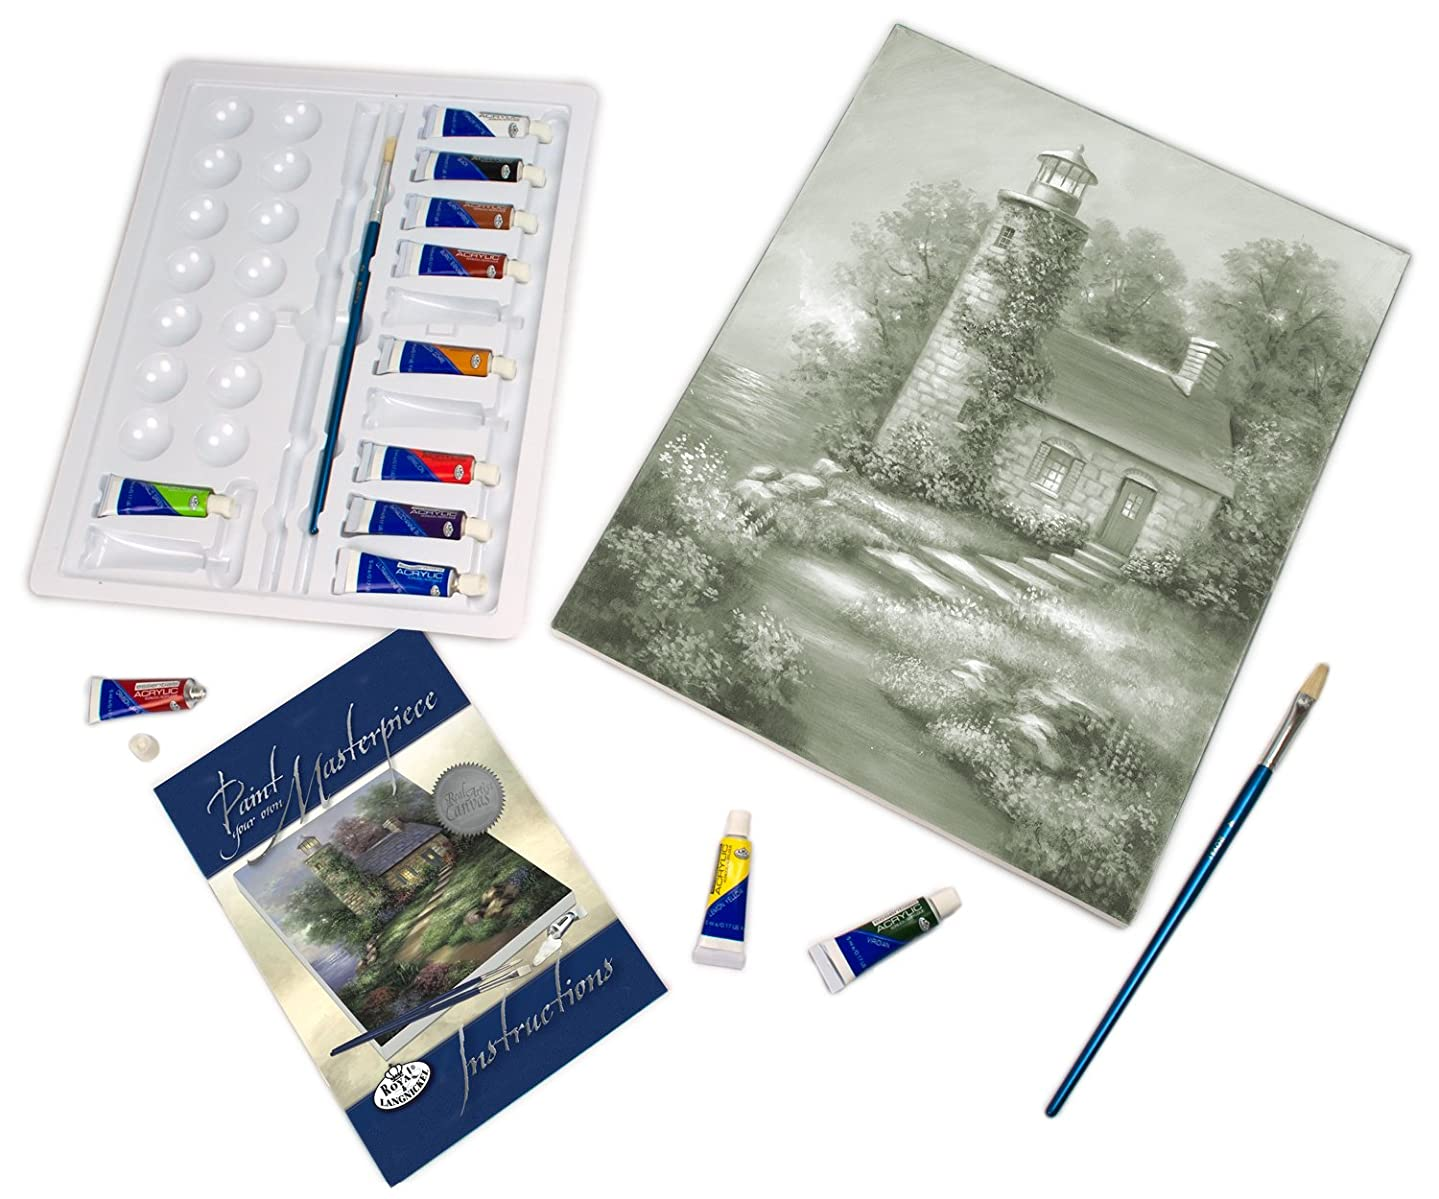 Royal & Langnickel Paint Your Own Masterpiece Painting Set, Romantic Lighthouse gky151899511